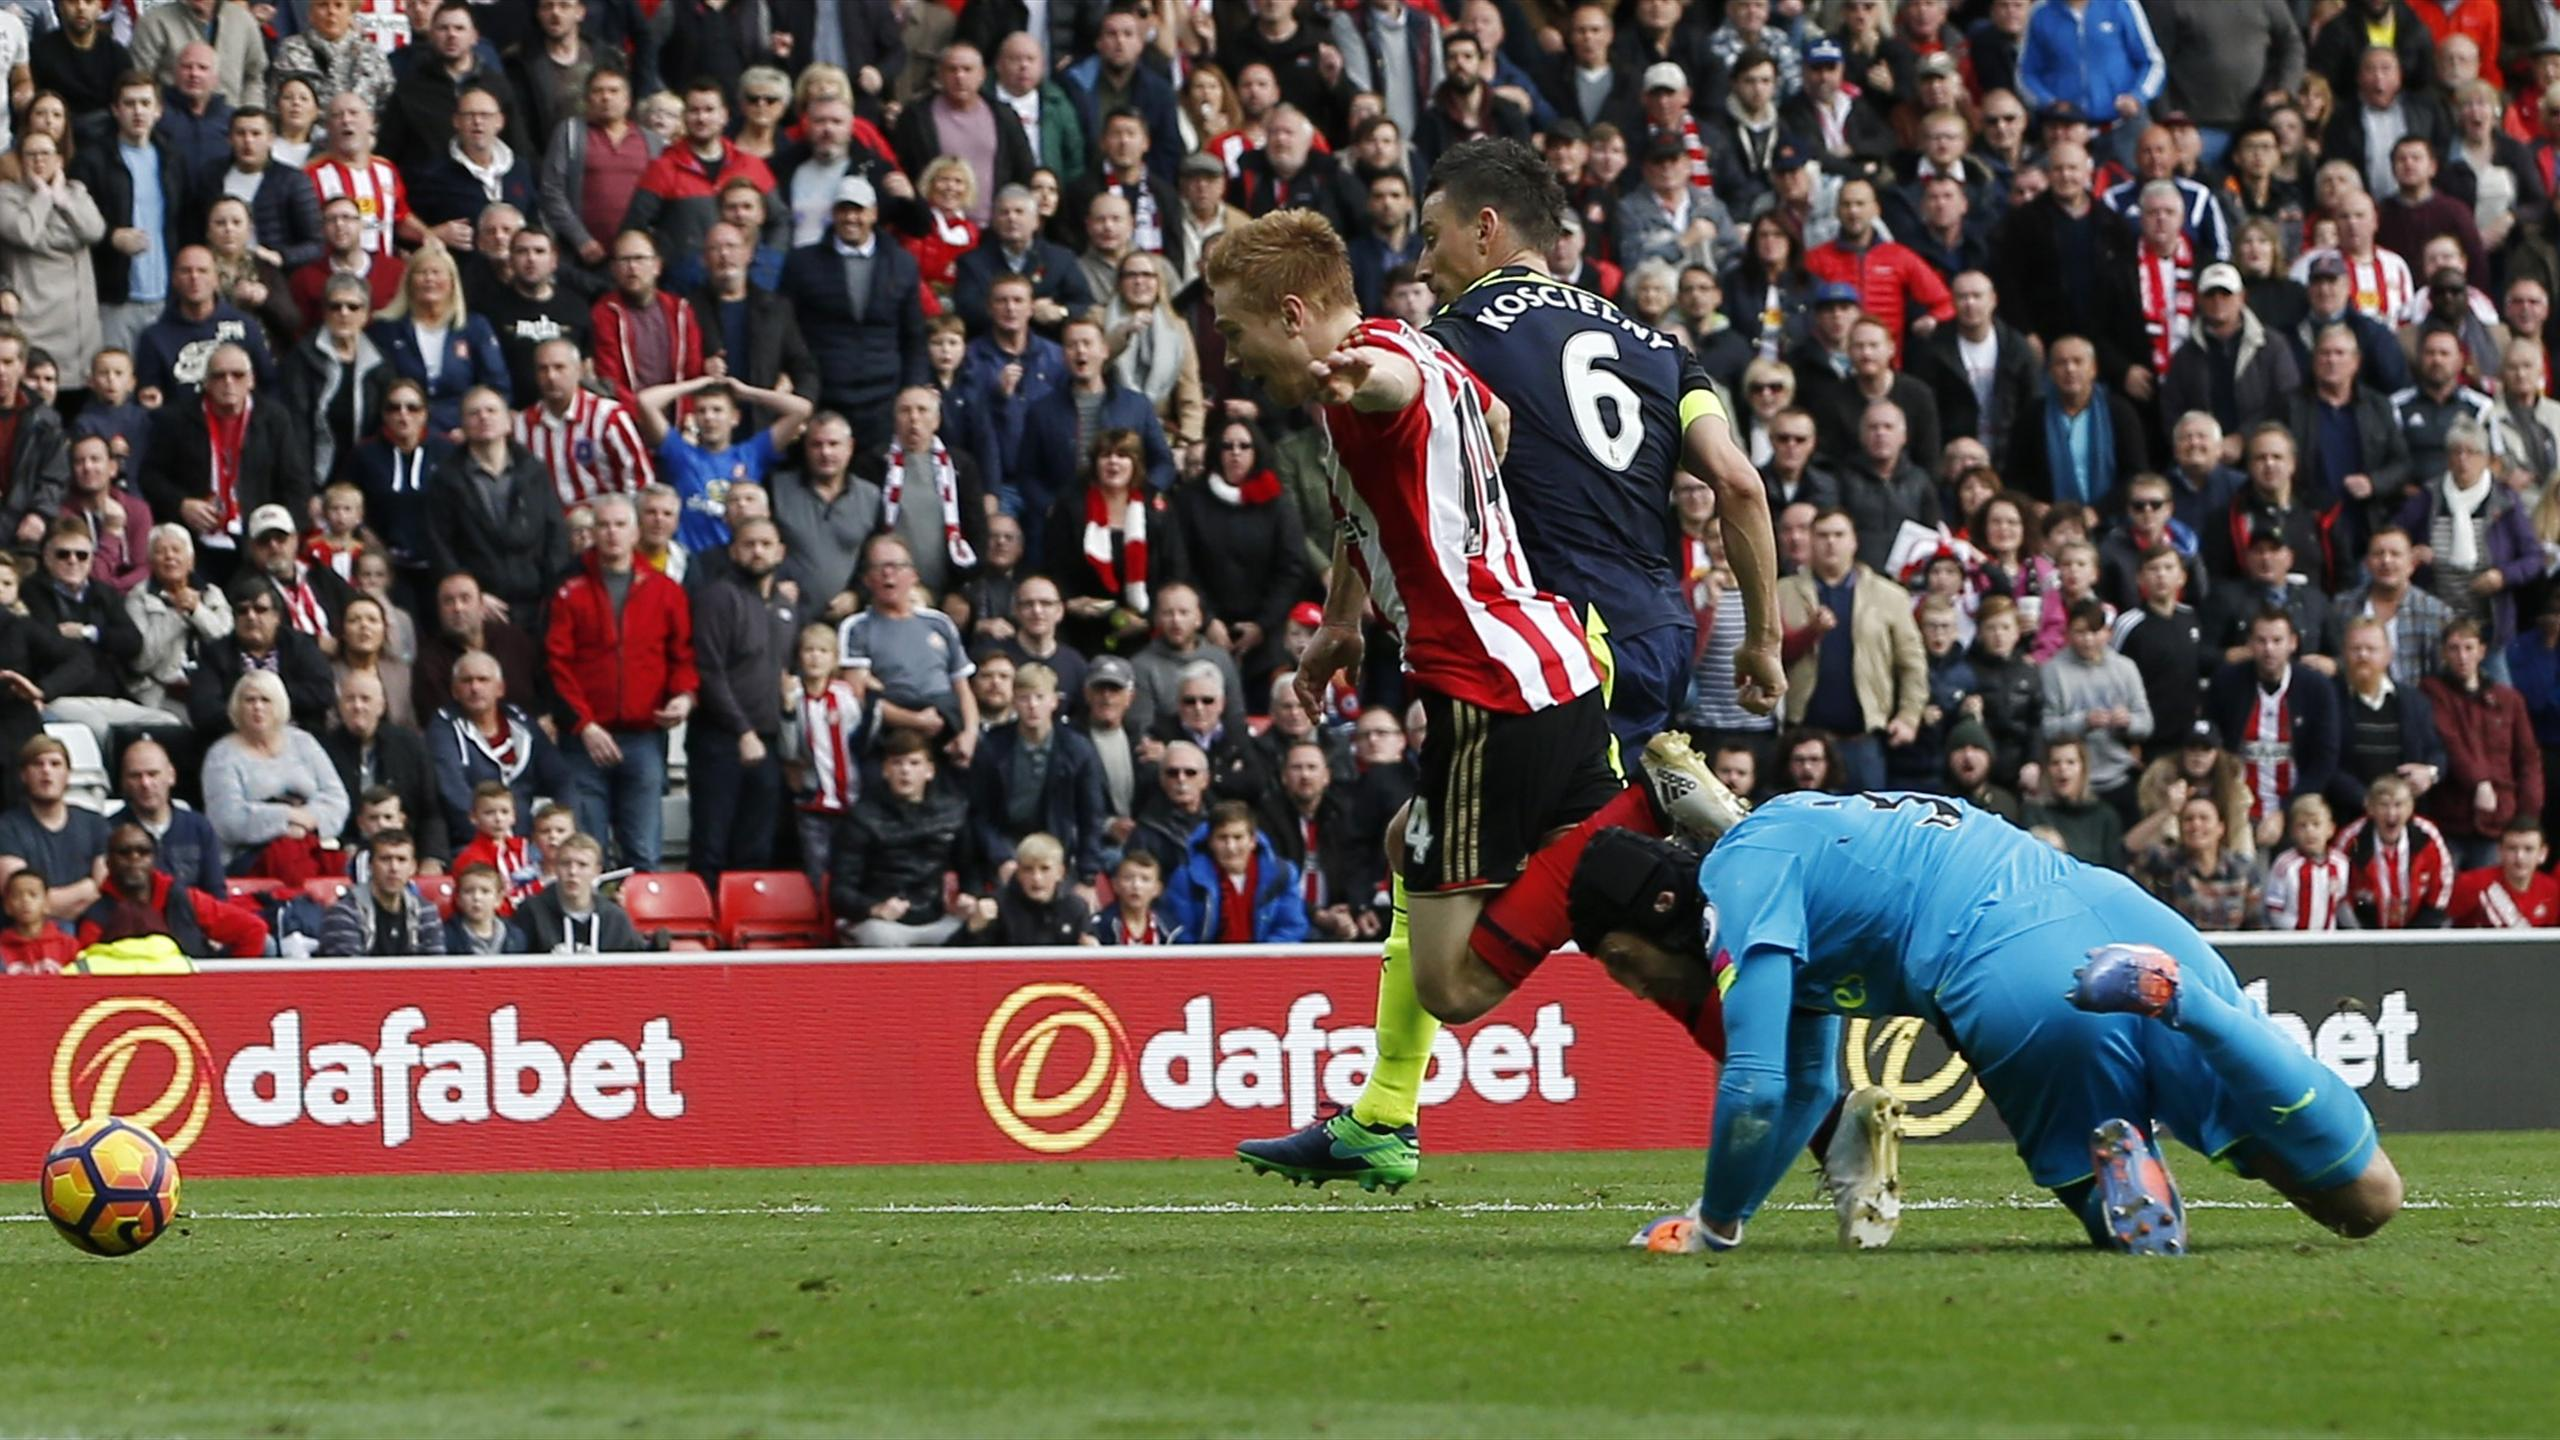 Arsenal's Petr Cech takes out Duncan Watmore for a Sunderland penalty